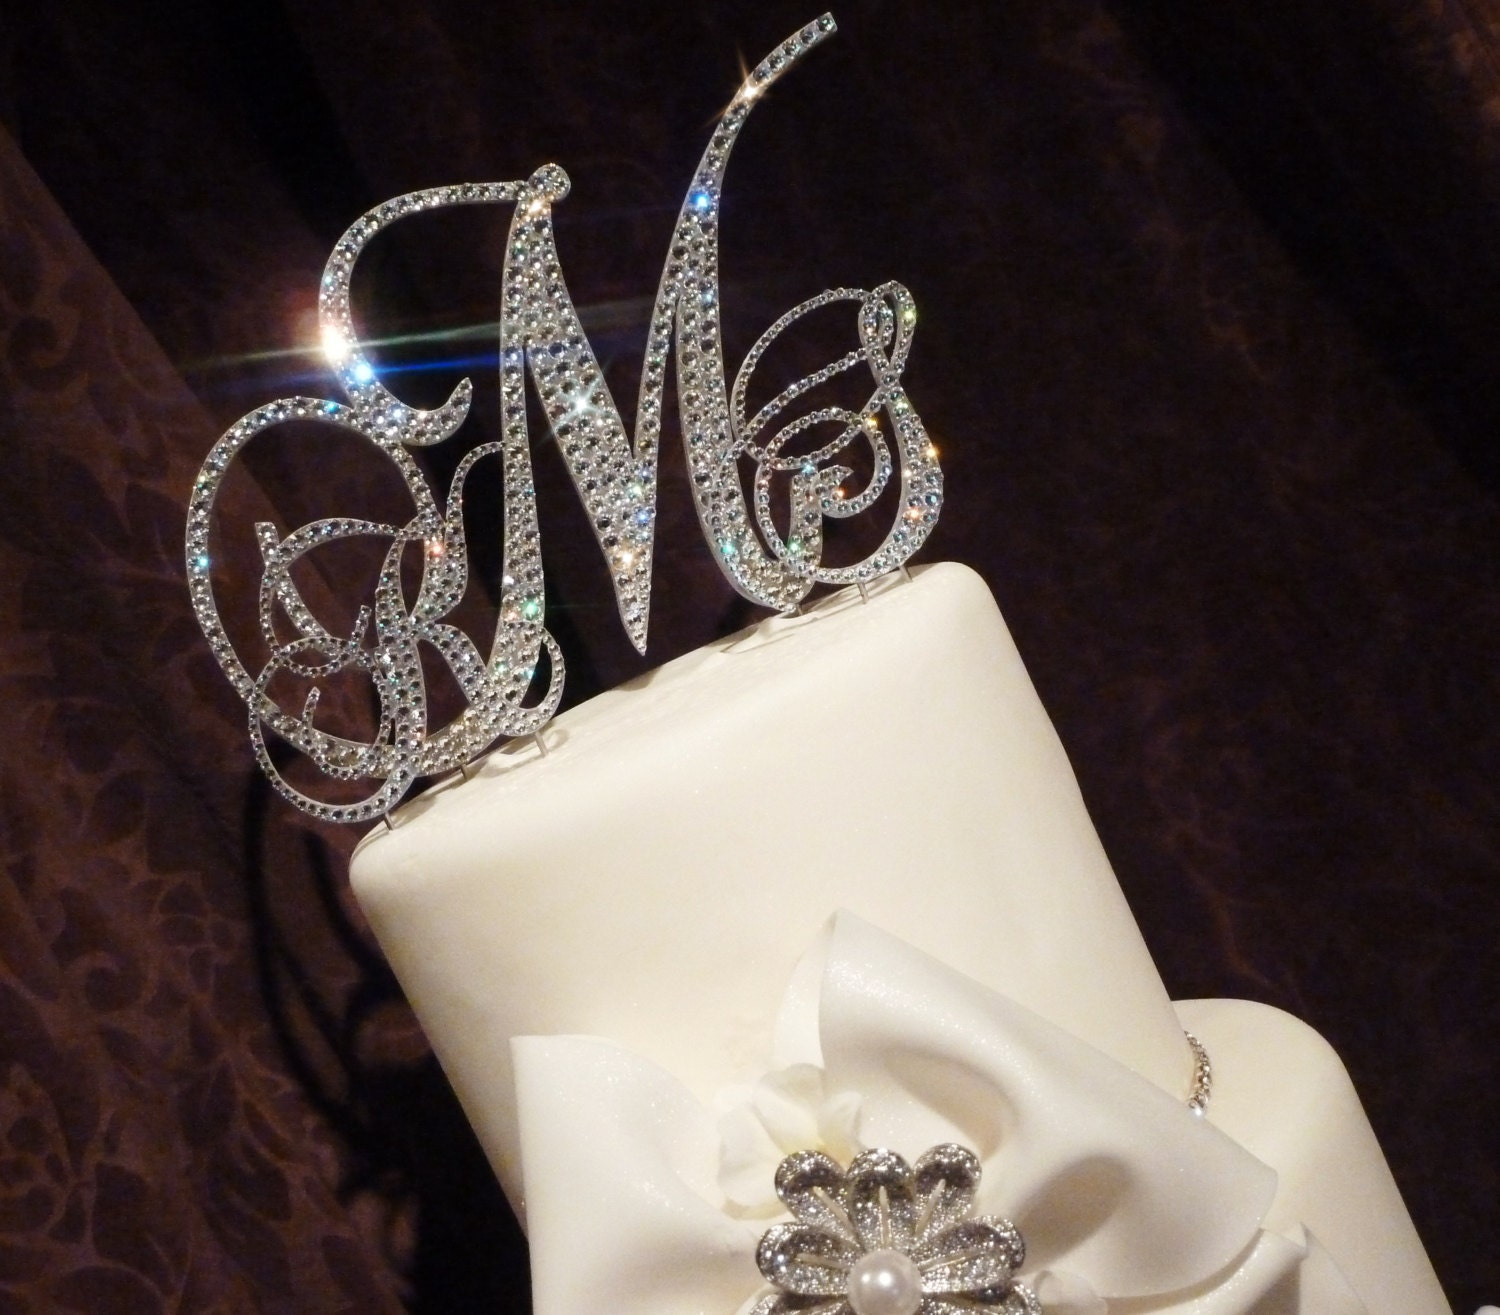 swarovski crystal monogram wedding cake topper swarovski monogram cake topper glitzy wedding by panachebride 20674